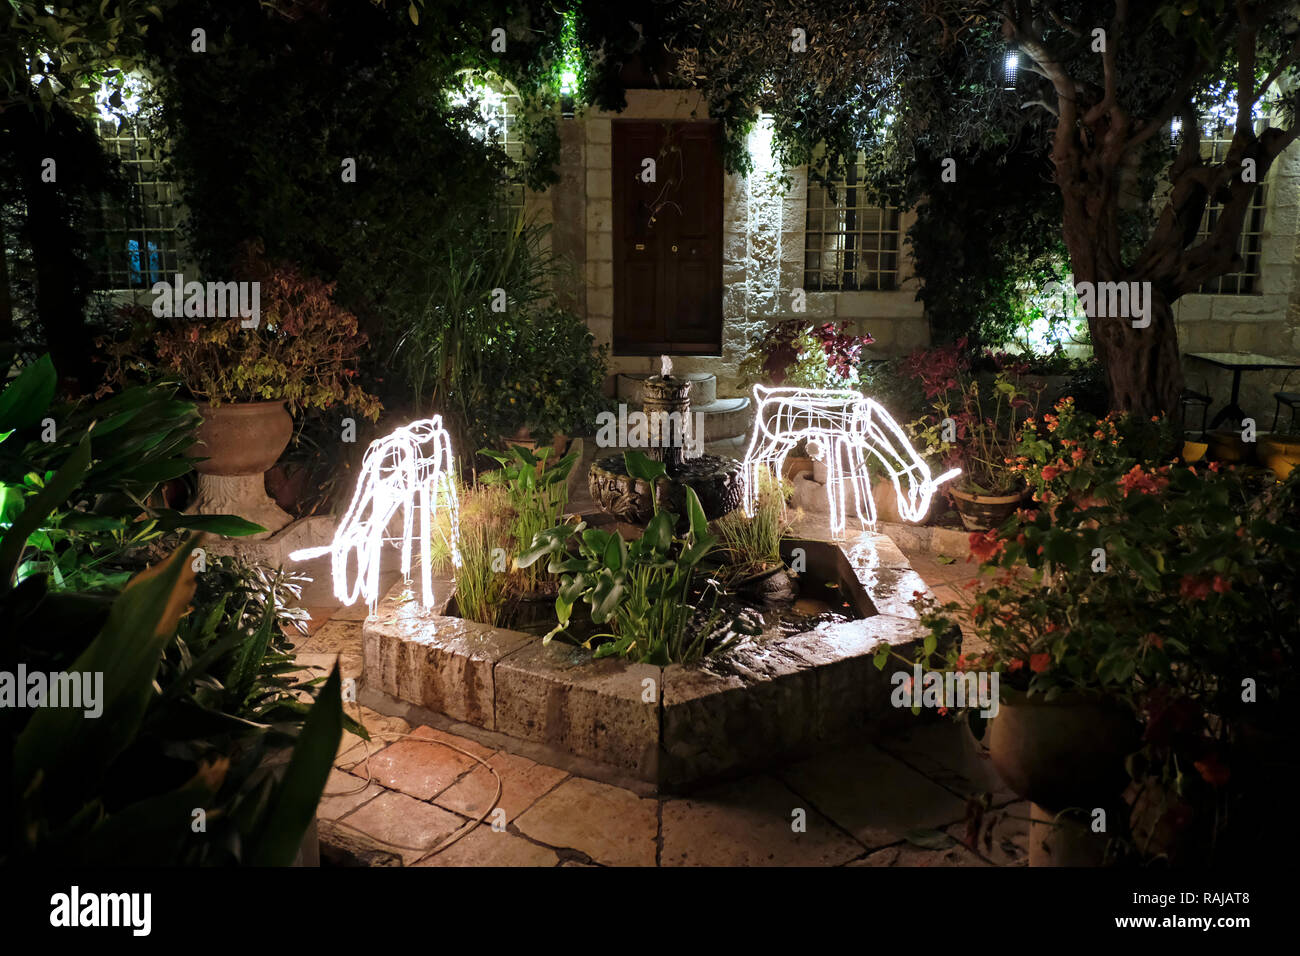 Christmas decorations at the inner courtyard of the American Colony Hotel located in a historic building which previously housed the utopian American-Swedish community known as the American Colony in East Jerusalem Israel - Stock Image